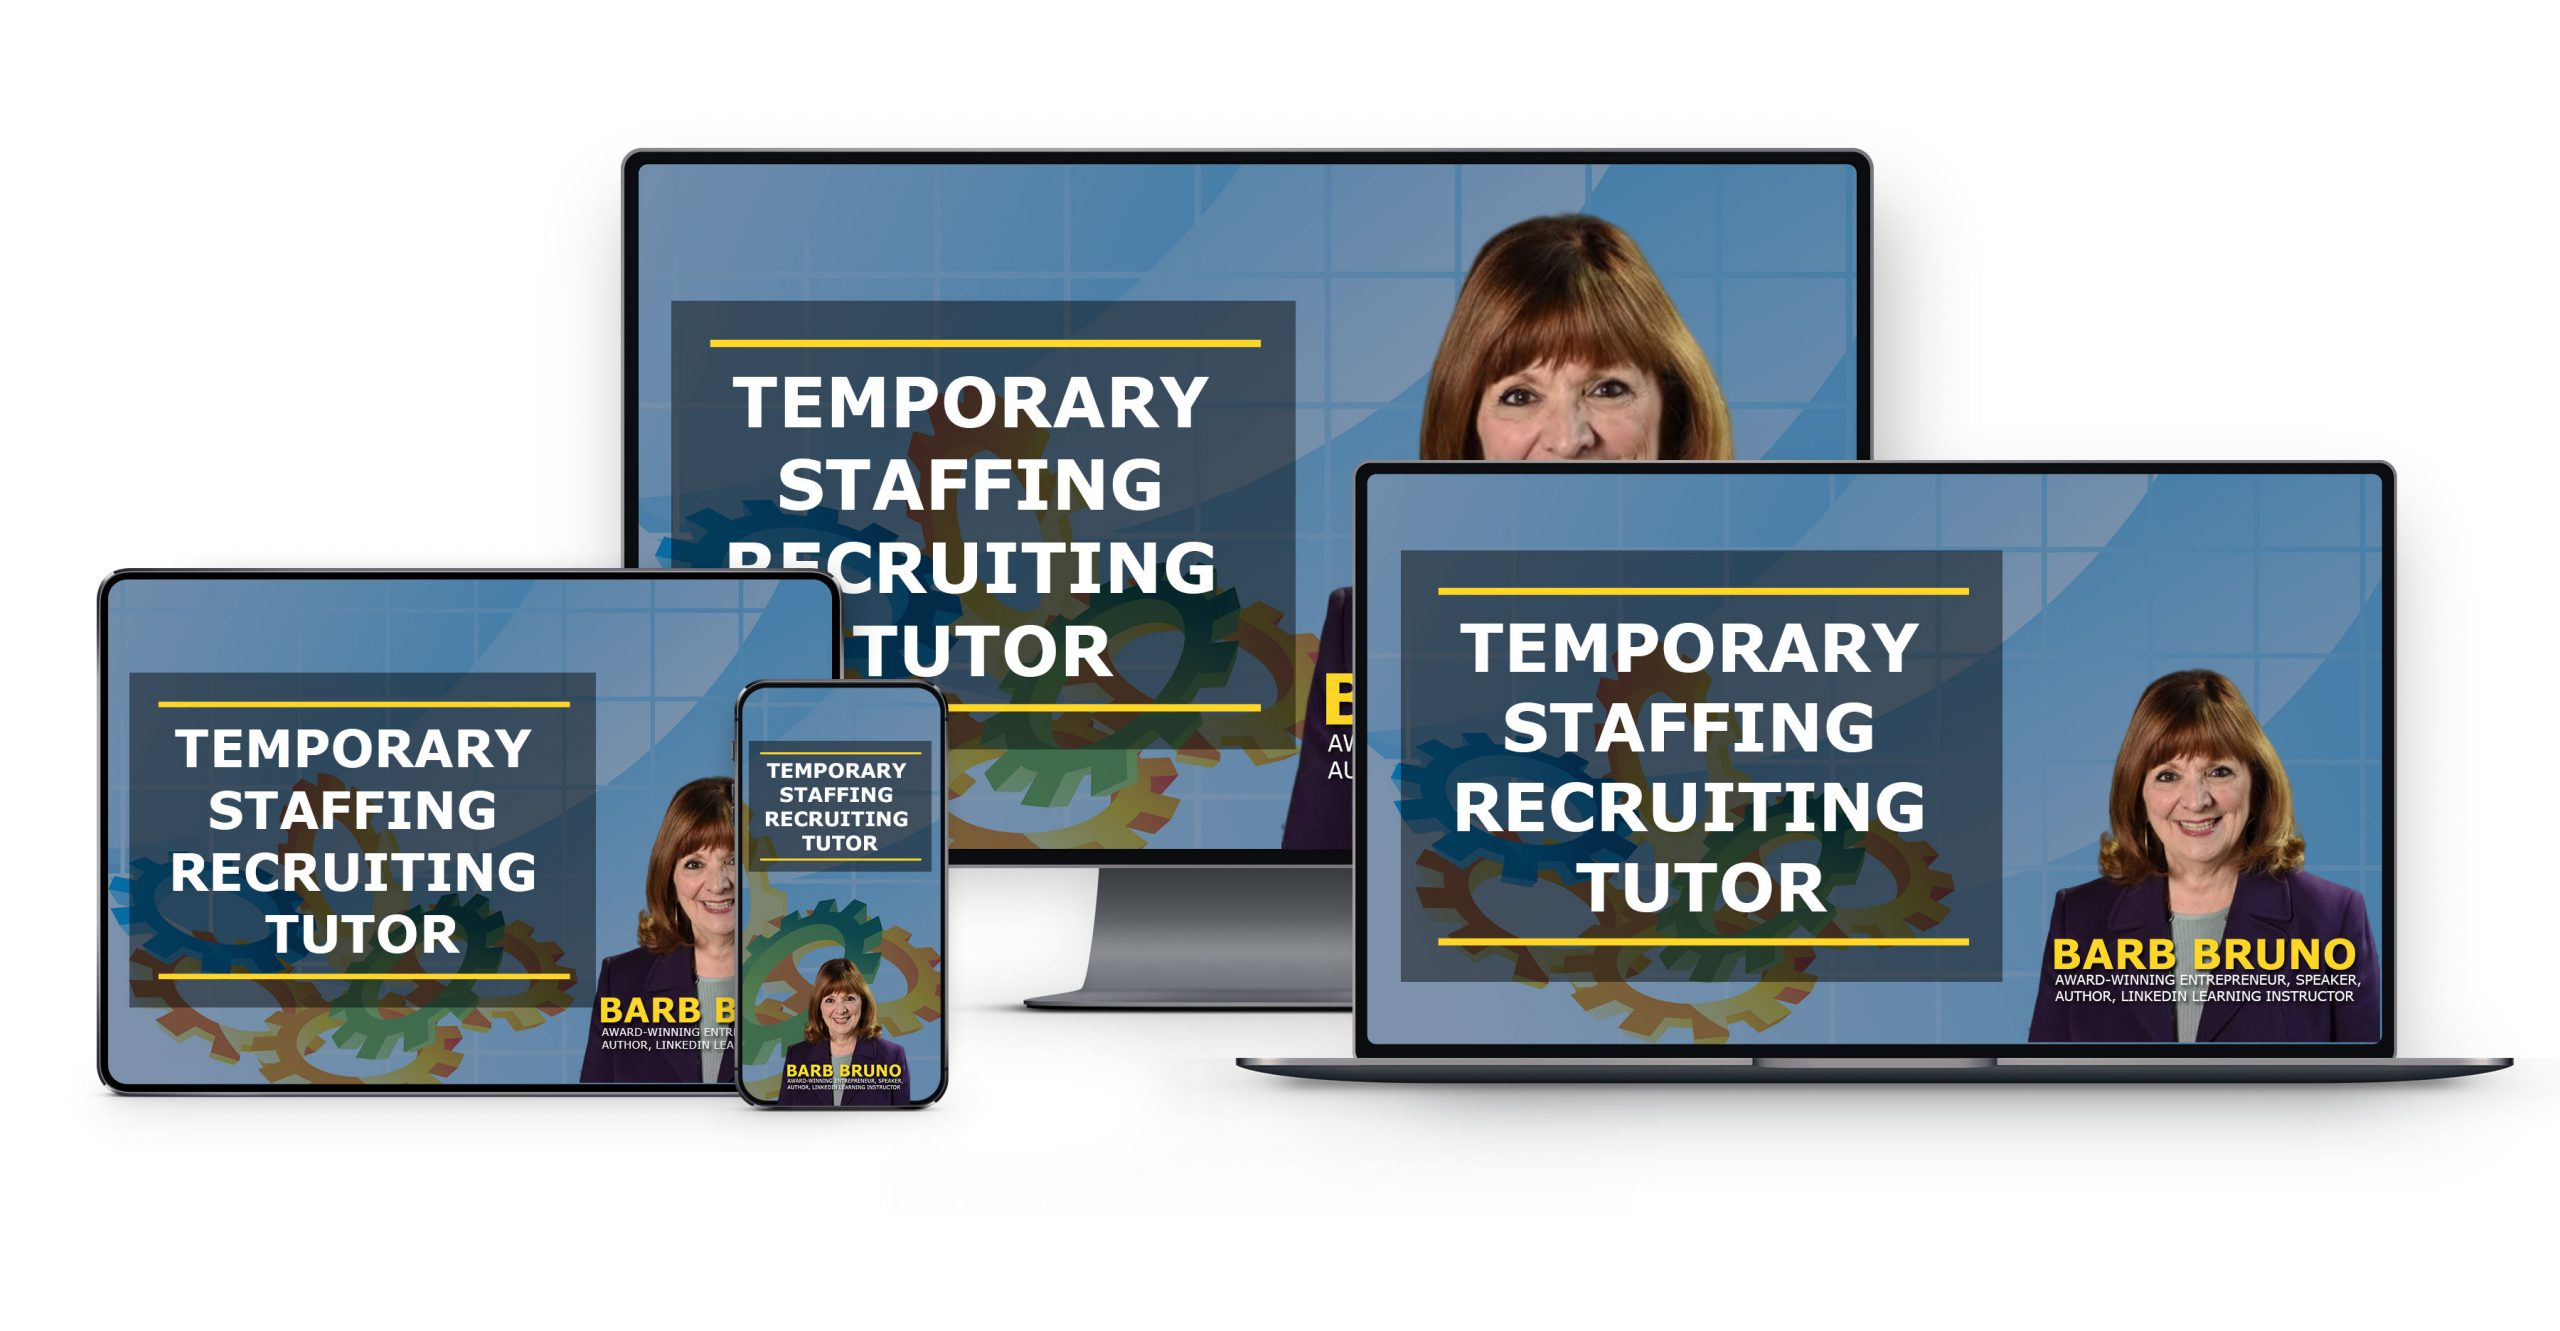 temporary-staffing-recruiting-tutor